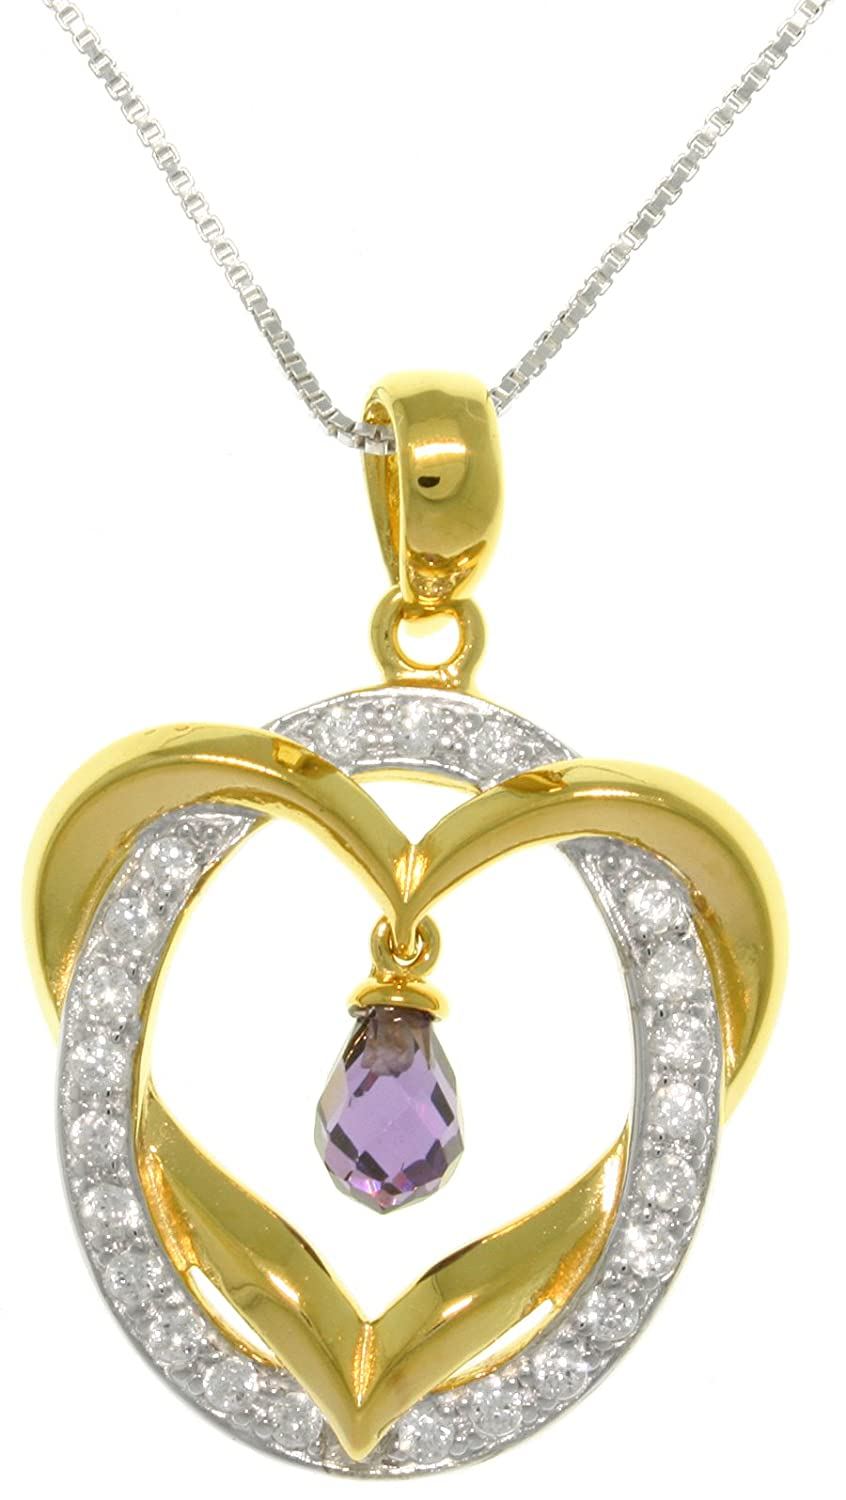 Jewelry Trends 14k Gold-Plated Silver Heart Pendant with Round Ring of CZ Crystals on Box Chain Necklace